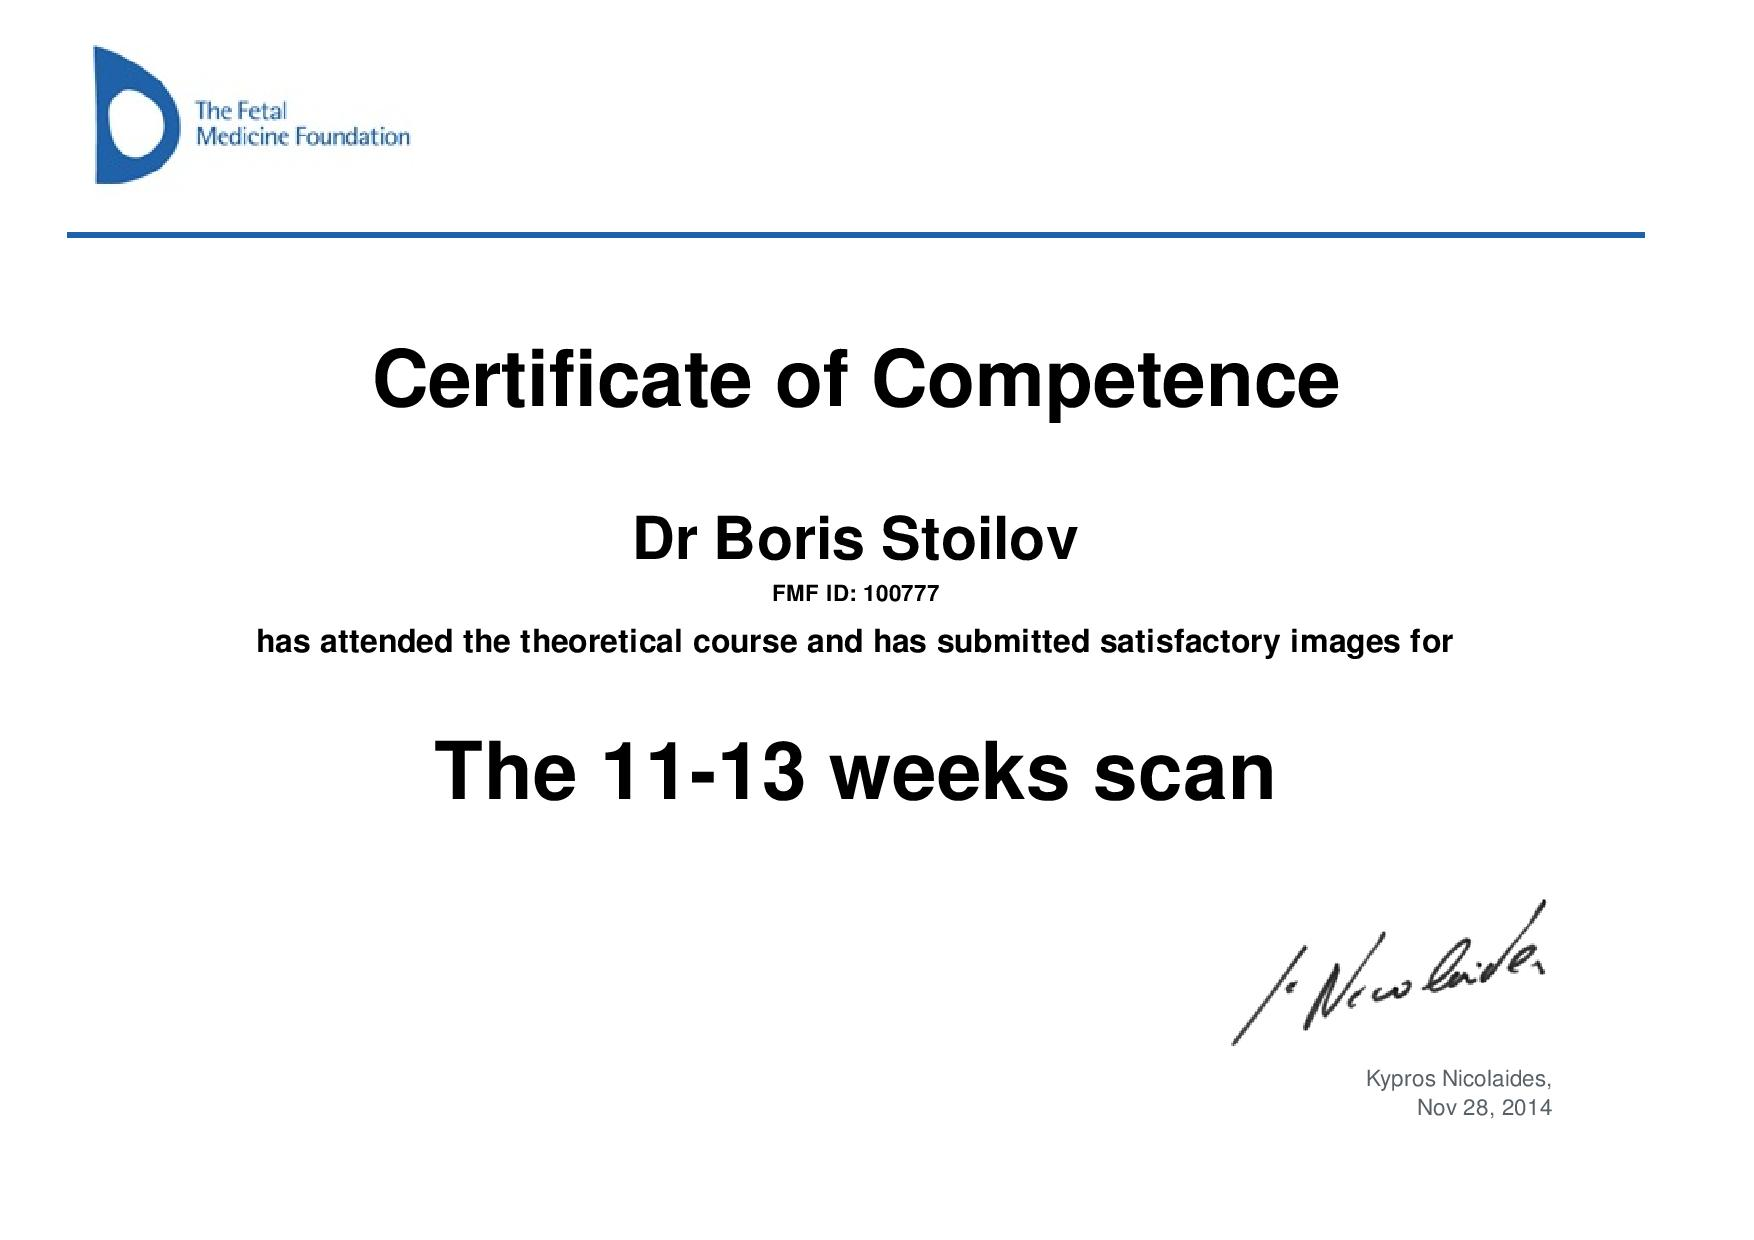 Certificate of competence in 11 - 13 weeks scan